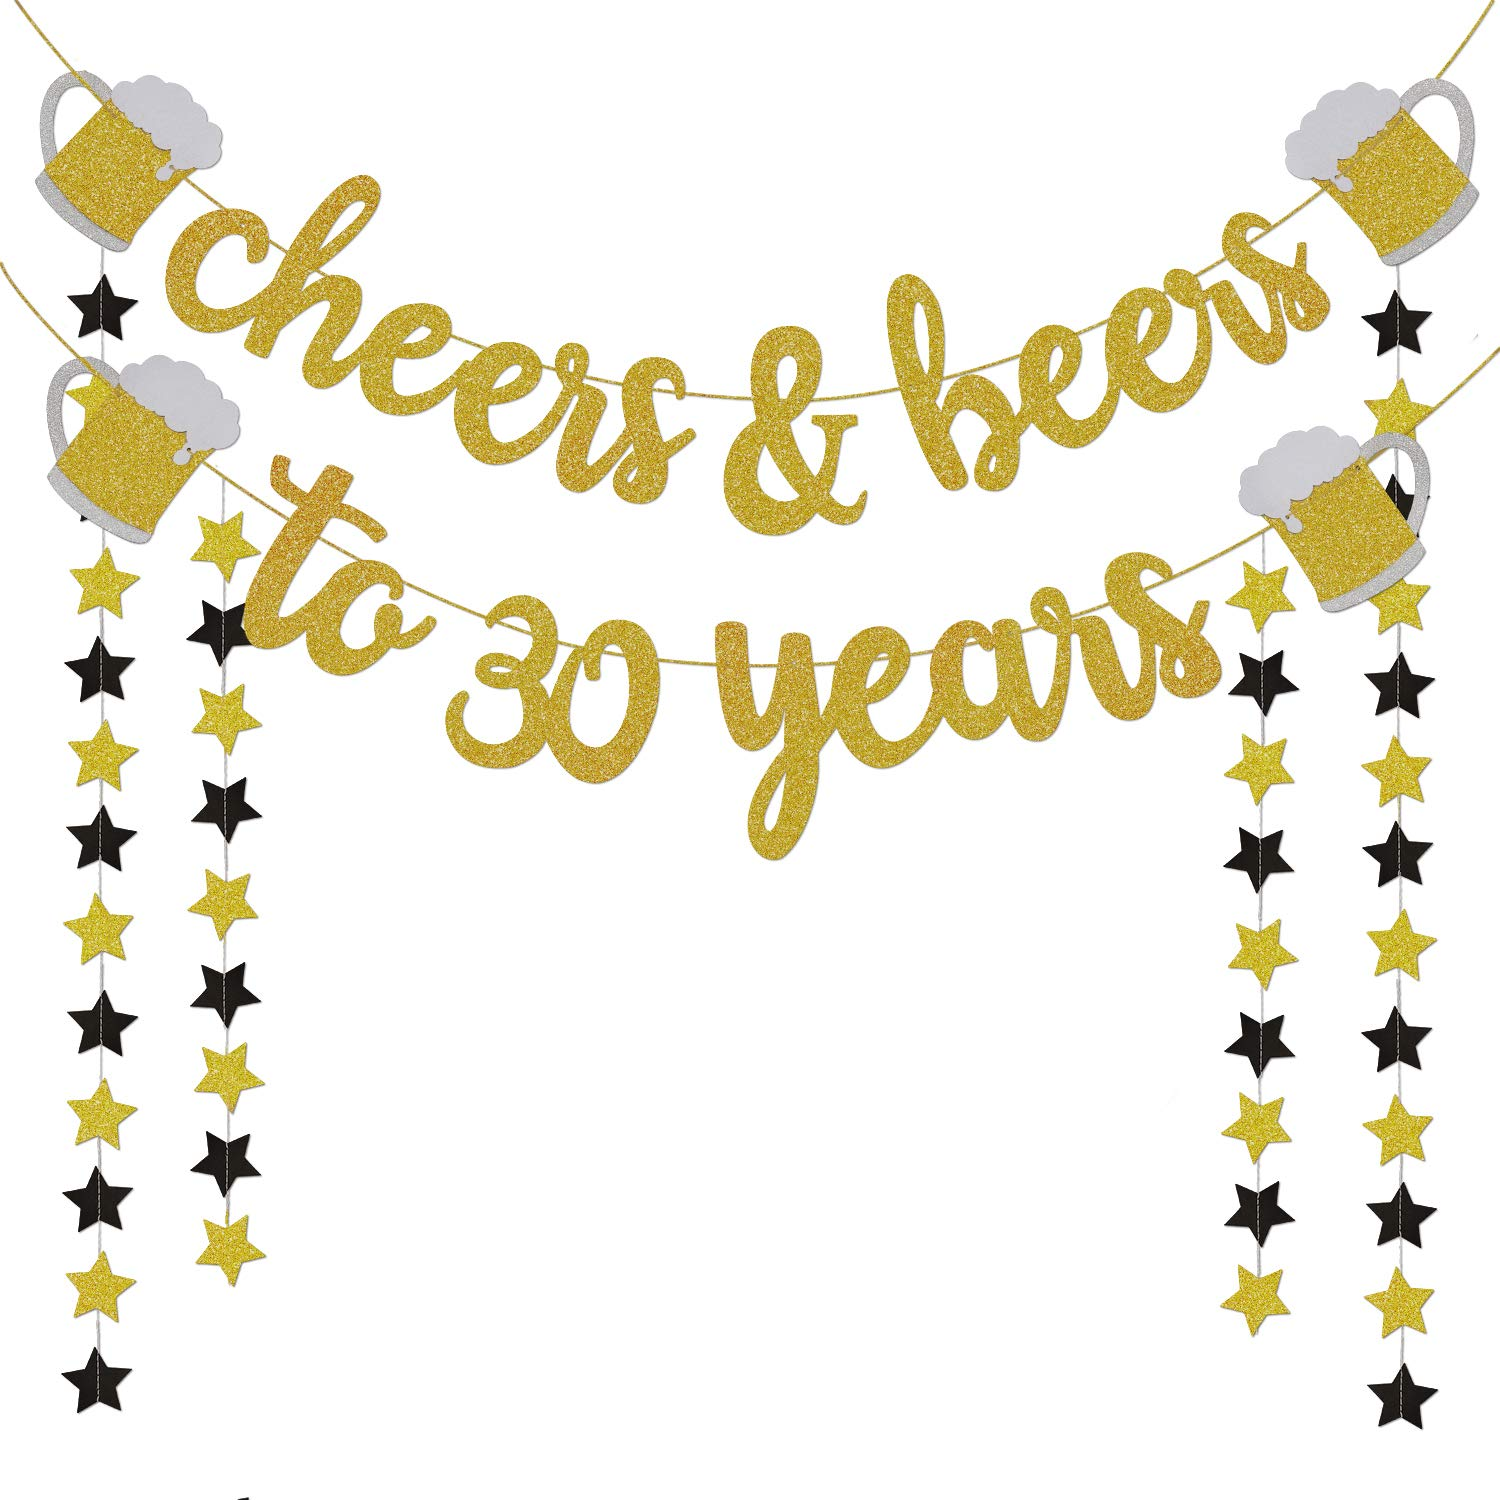 30th Birthday Decorations For Him Her 30th Birthday Gifts Cheers Beers To 30 Years Gold Glitter Banner 30th Anniversary Decorations For Party 30th Wedding Party Supplies For Men Women